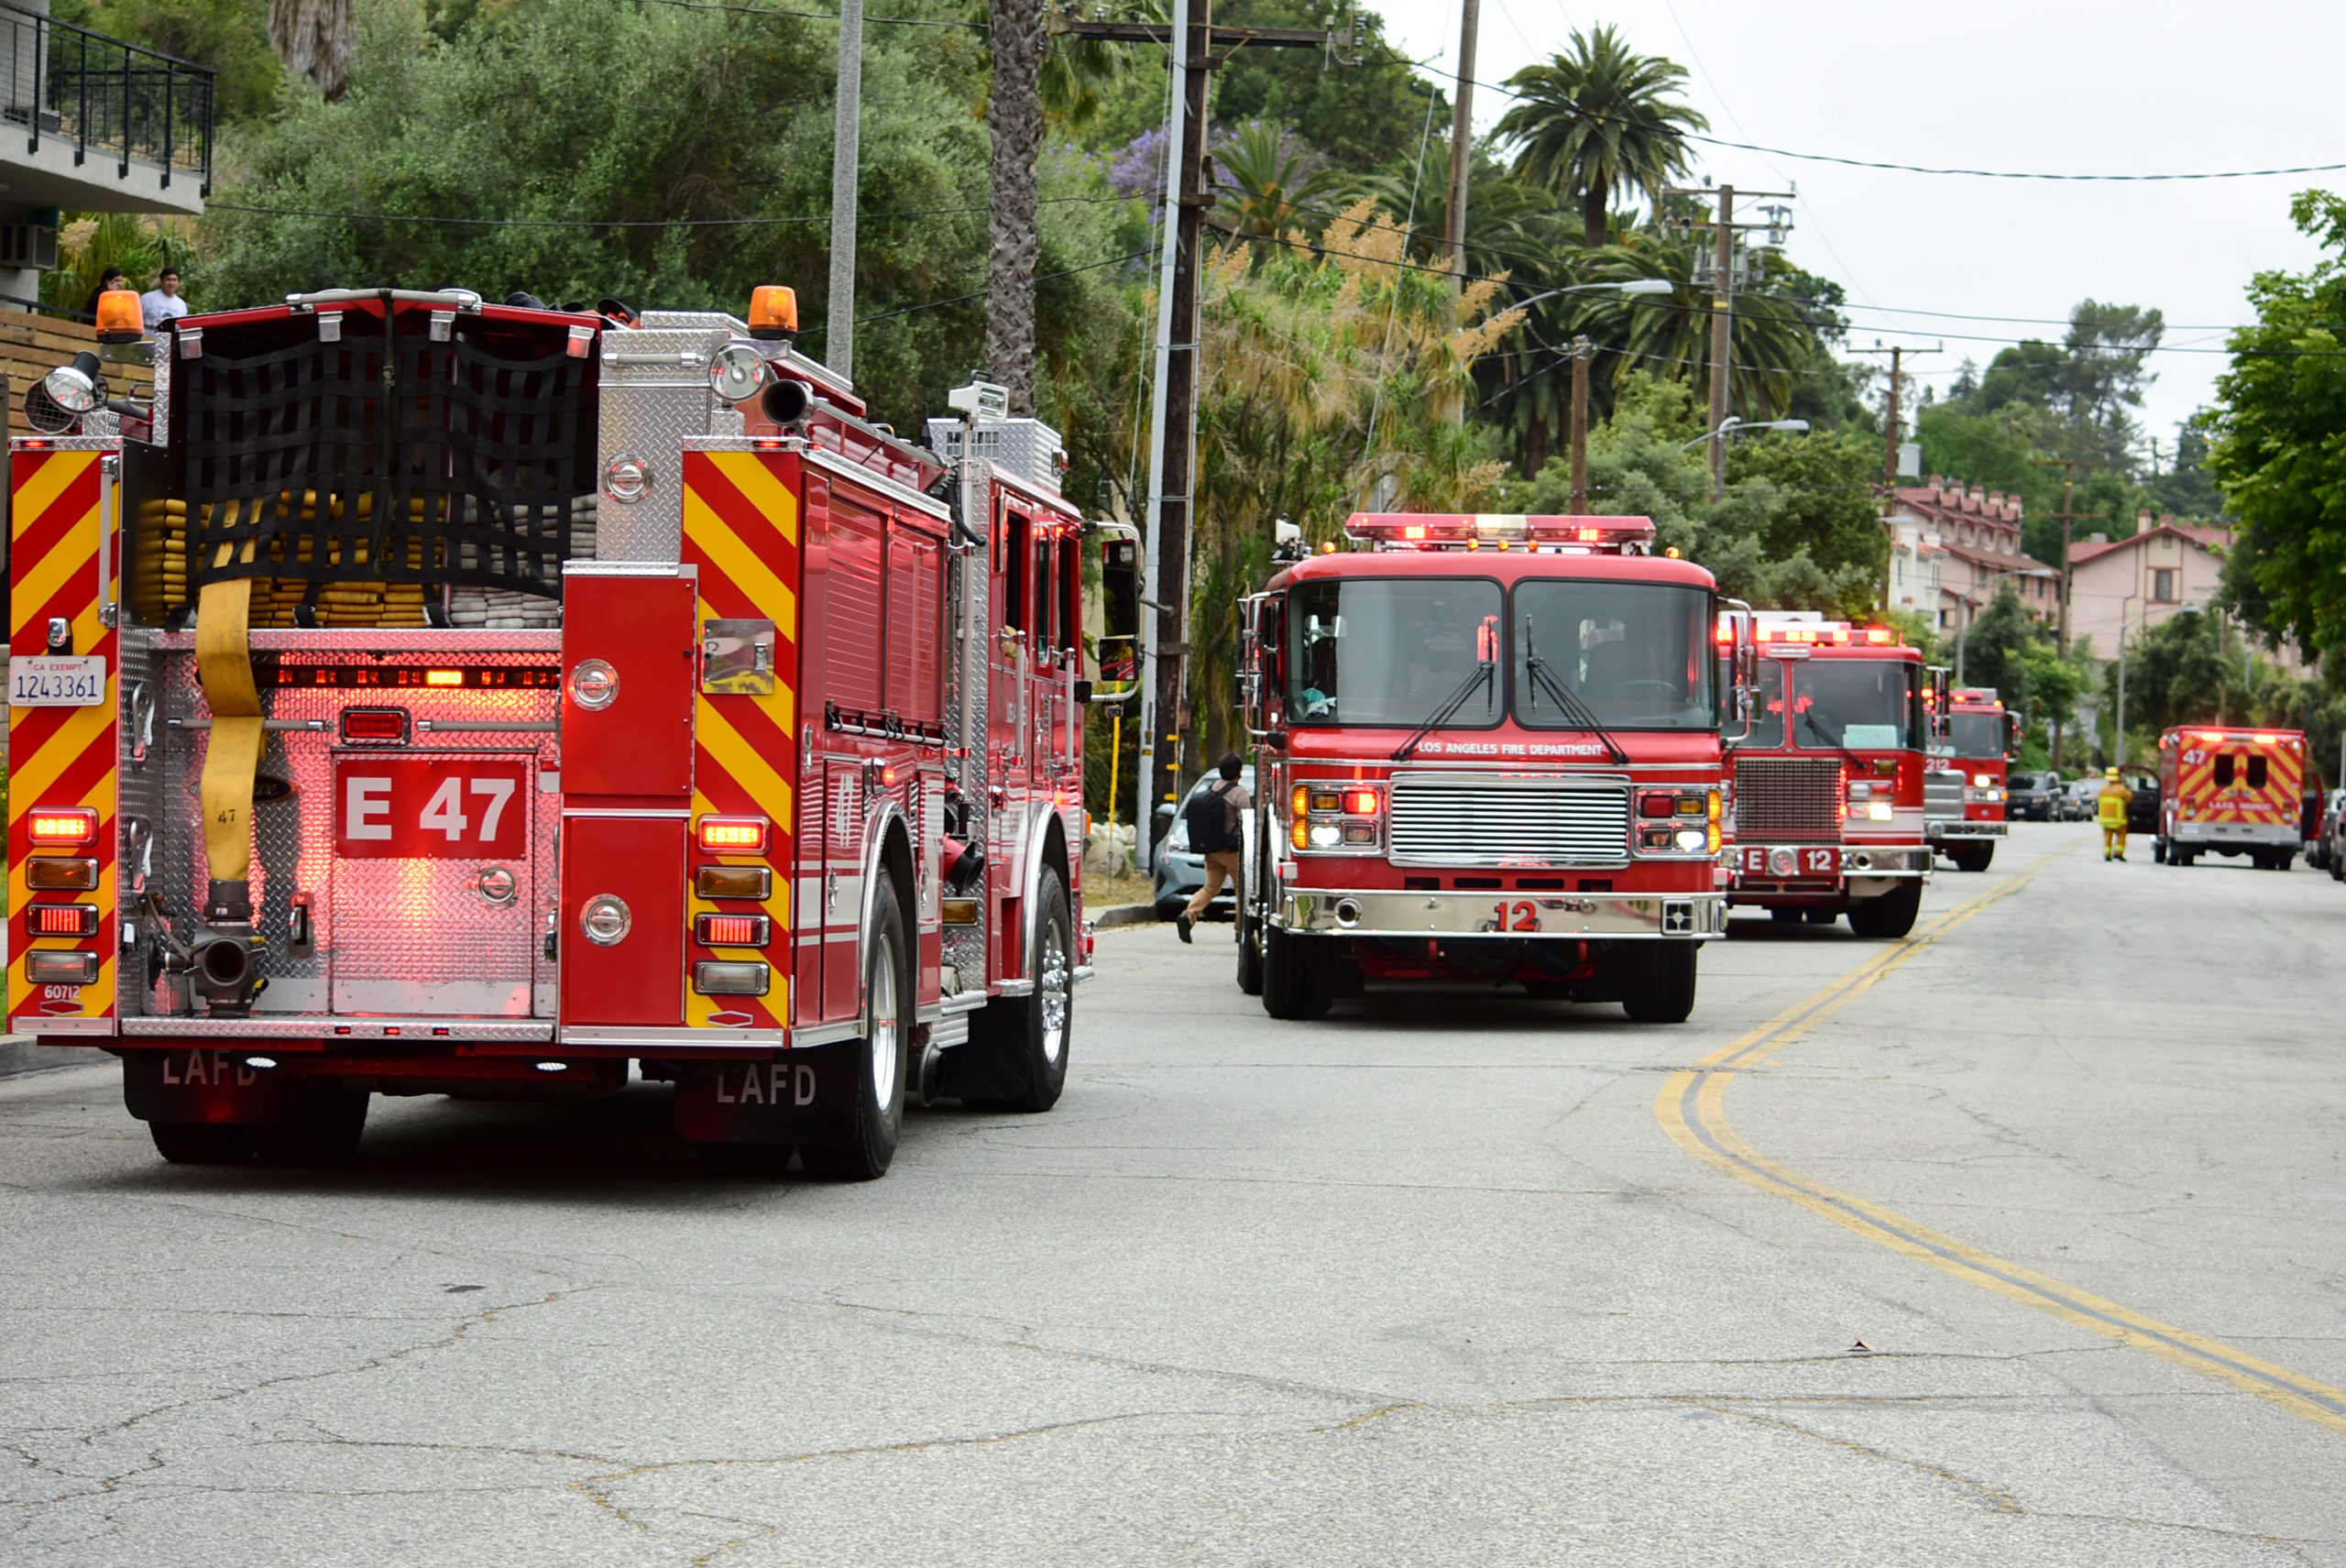 south-pasadena-news-06-05-2020-spfd-house-fire-monterey-road-los-angeles-10